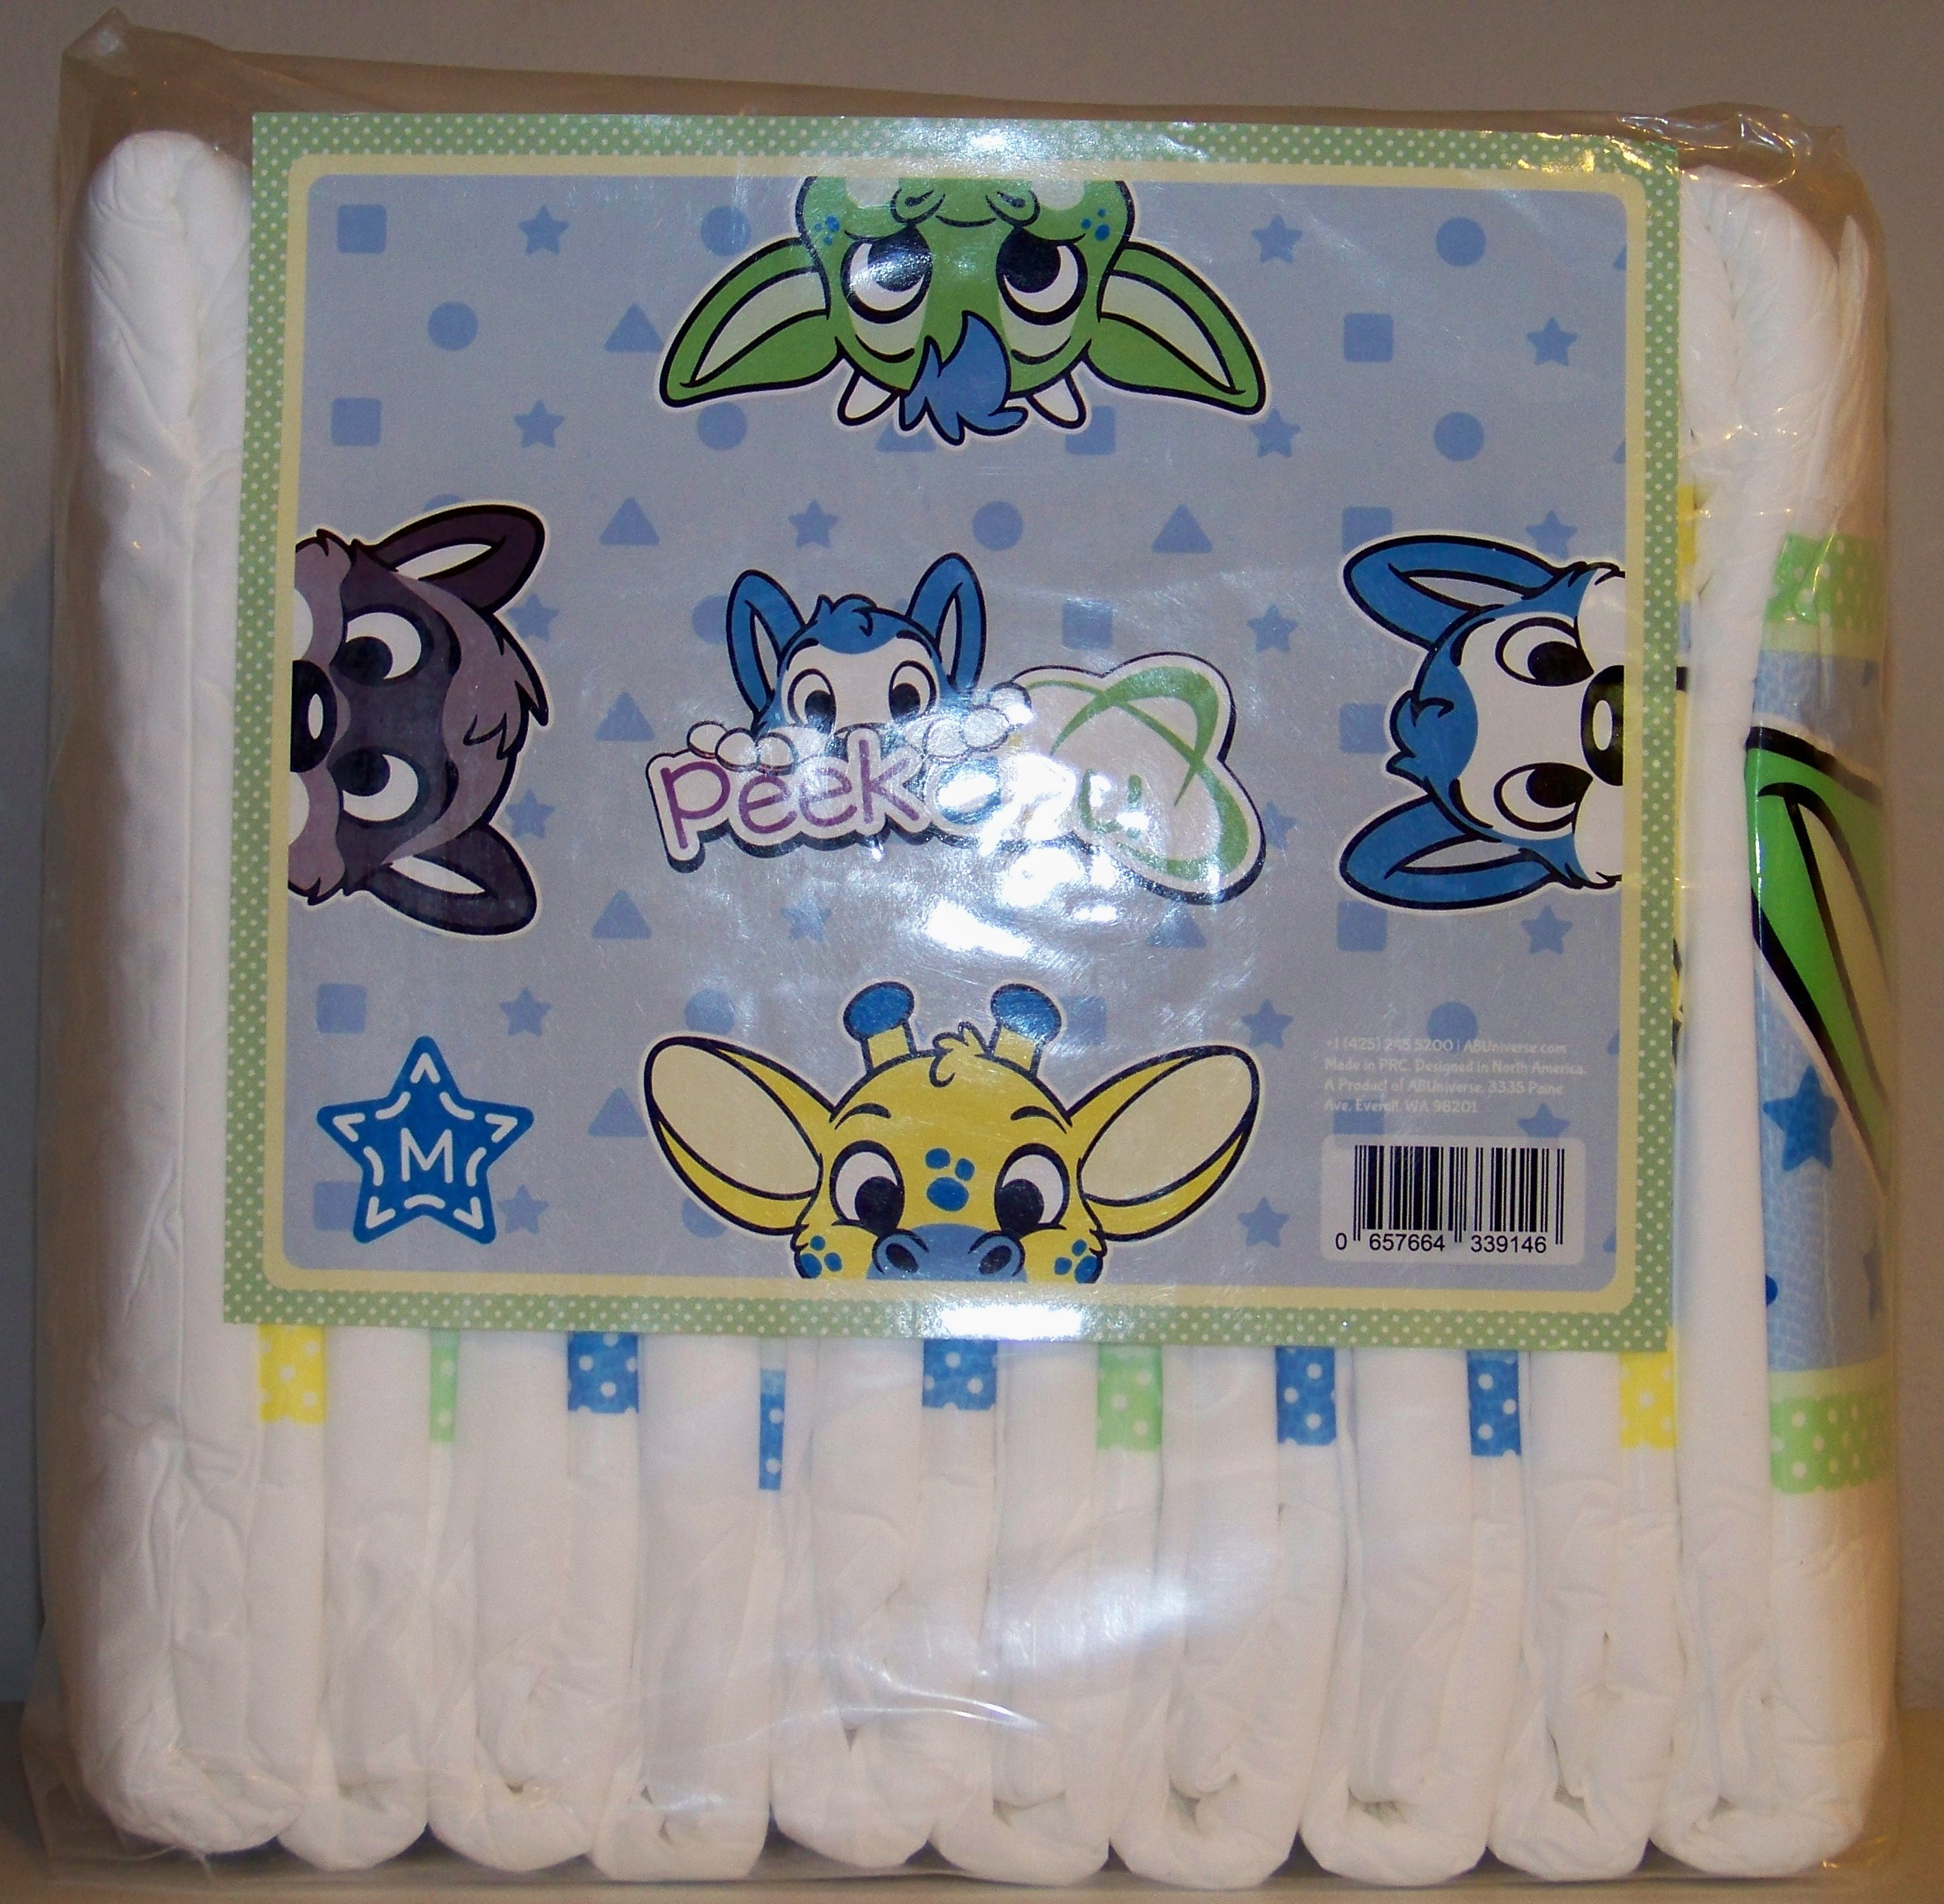 The panel has the 4 print characters peeking out from the 4 sides with the  diaper logo in the center.